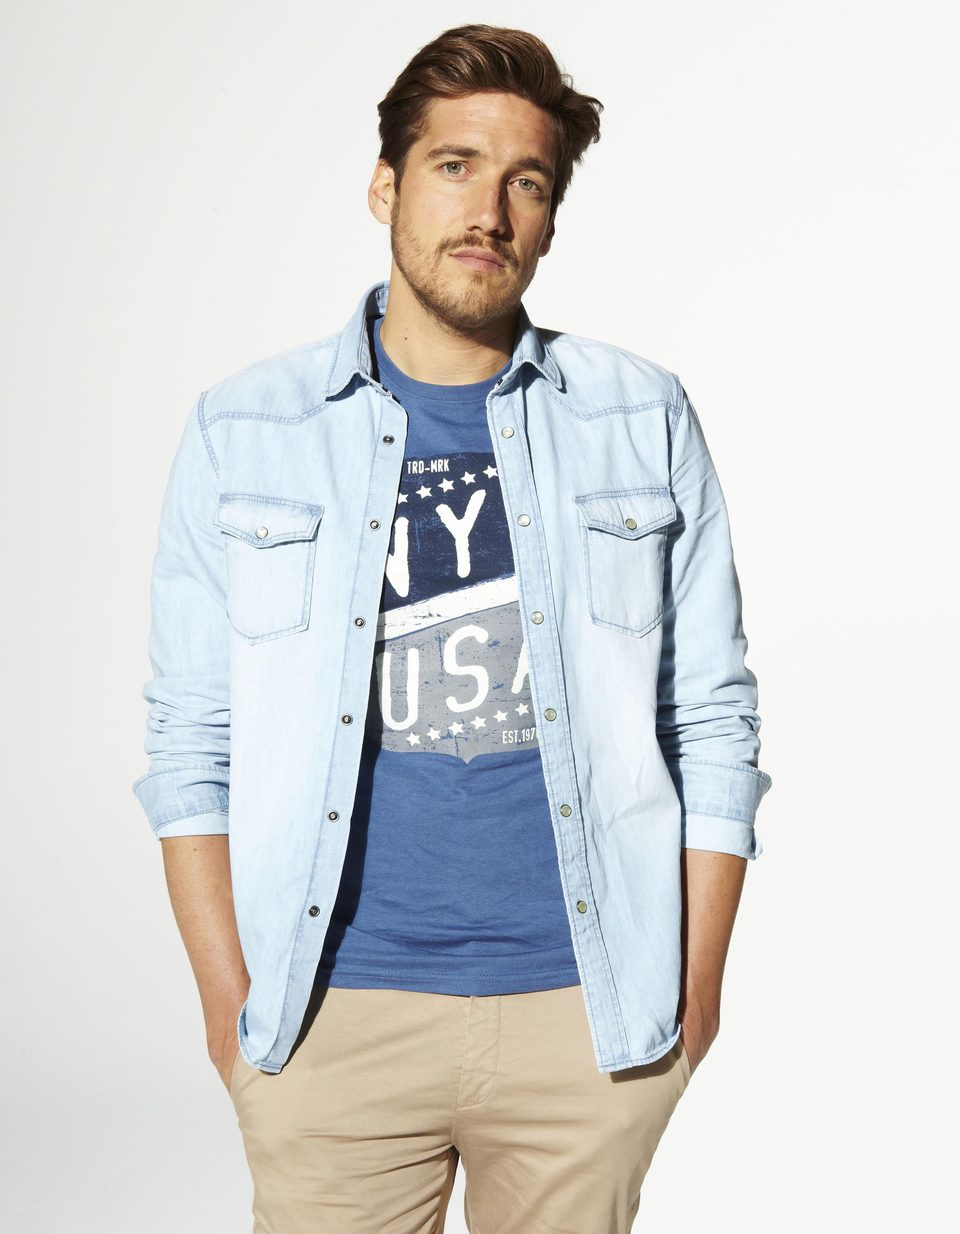 Coupe 100 Vajean Chemise Regular Denim Délavé Coton Celio France AqEIIY4w